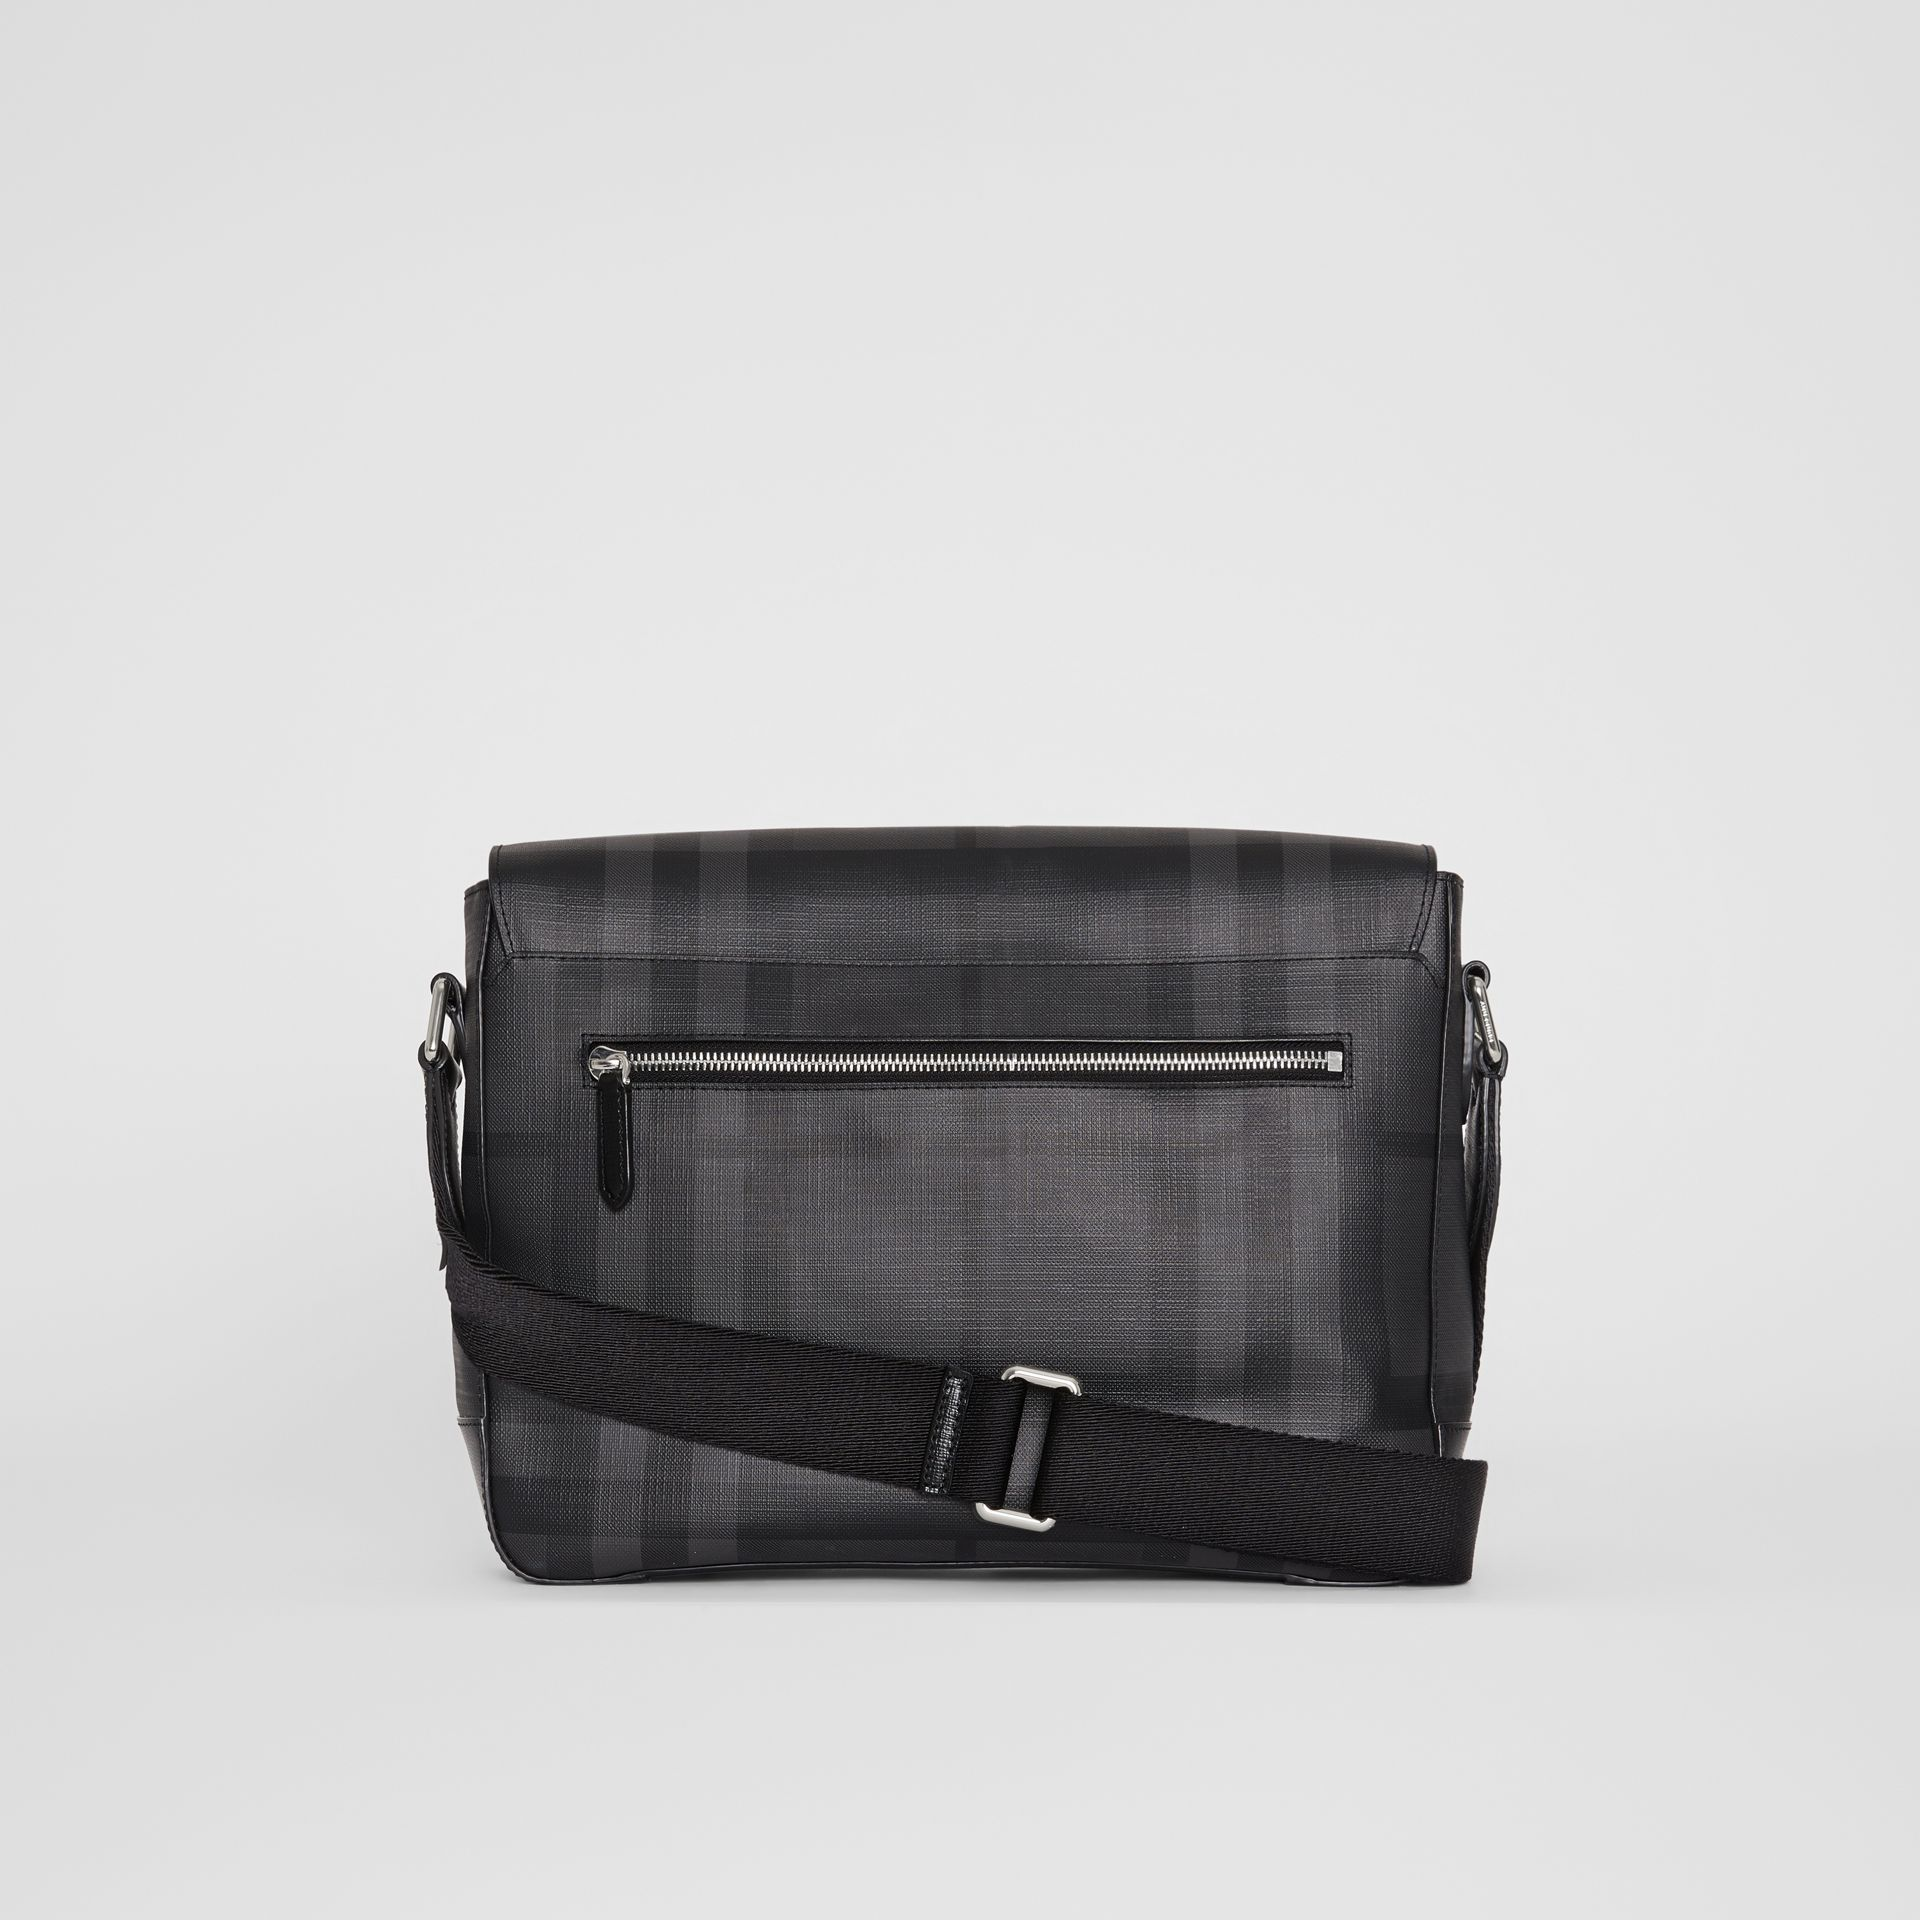 Medium Leather Trim London Check Messenger Bag in Charcoal/black - Men | Burberry Canada - gallery image 7